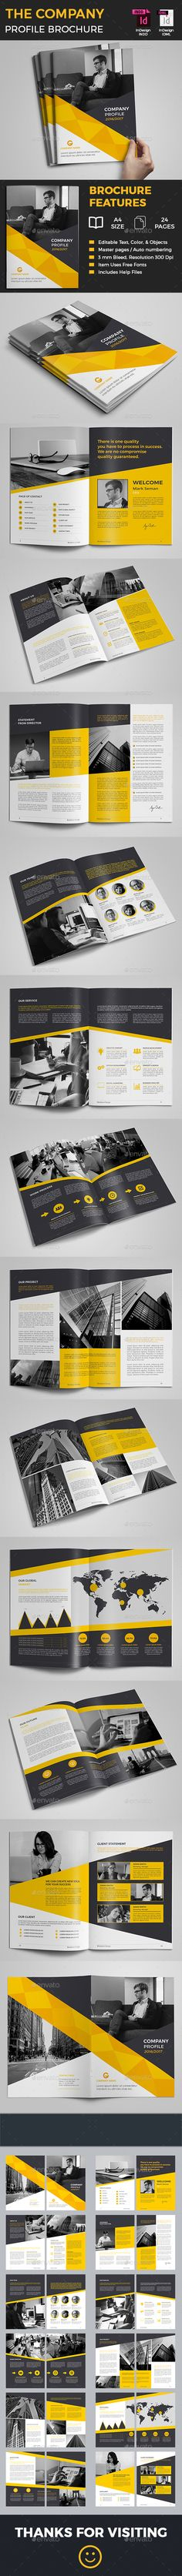 Company Profile Brochure Template InDesign INDD. Download here: http://graphicriver.net/item/company-profile-brochure/15821885?ref=ksioks